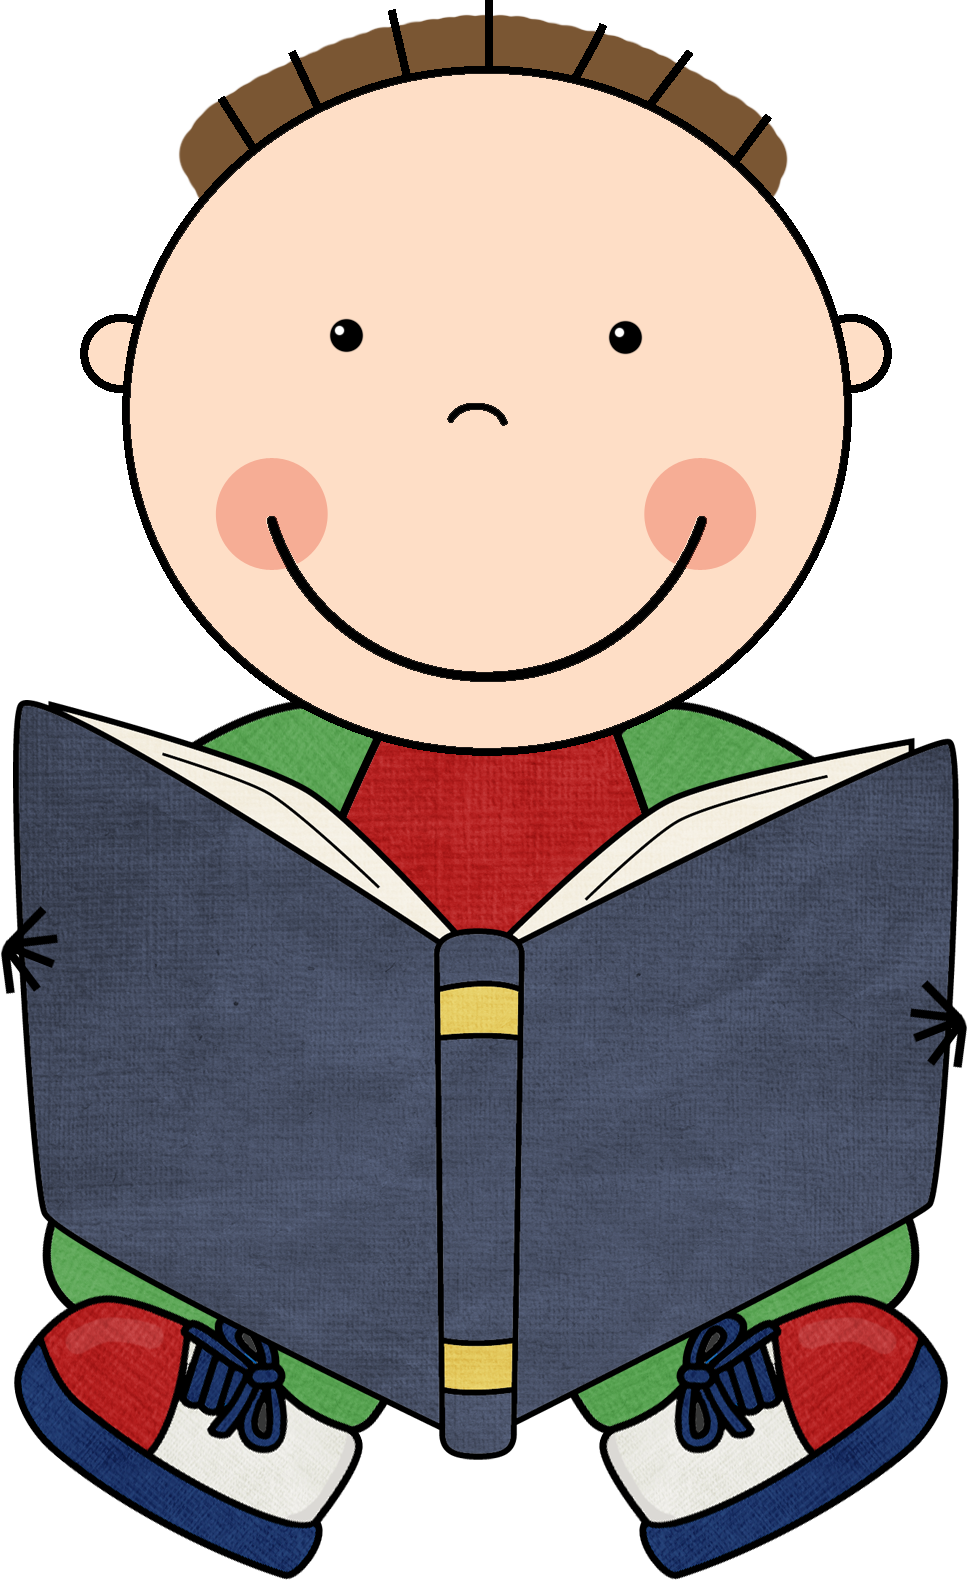 Read To Self Png - Literacy clipart read to self, Literacy read to self Transparent ...